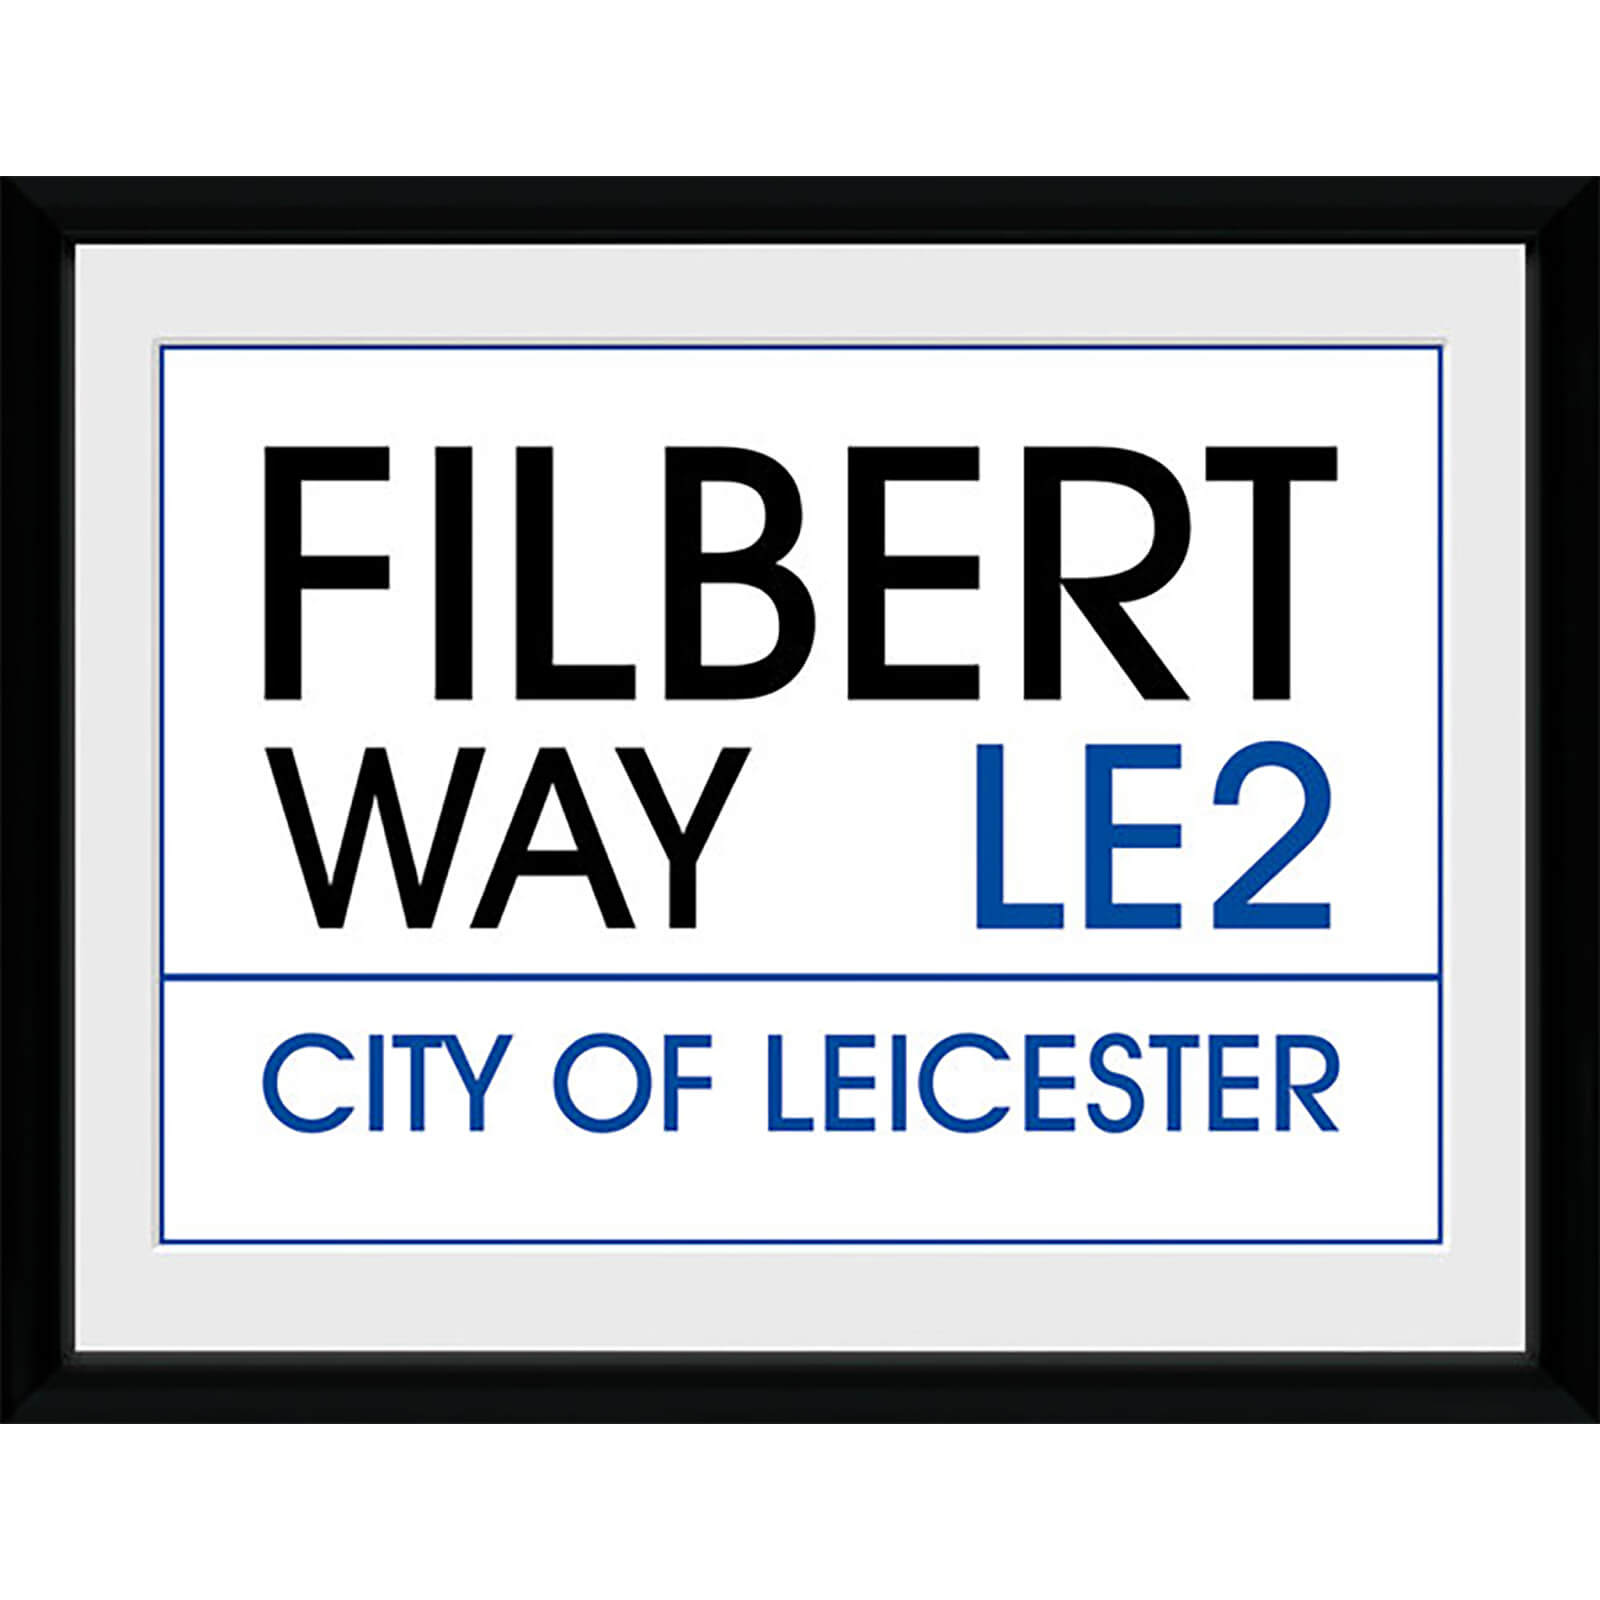 Leicester Street Sign - 16 x 12 Inches Framed Photograph